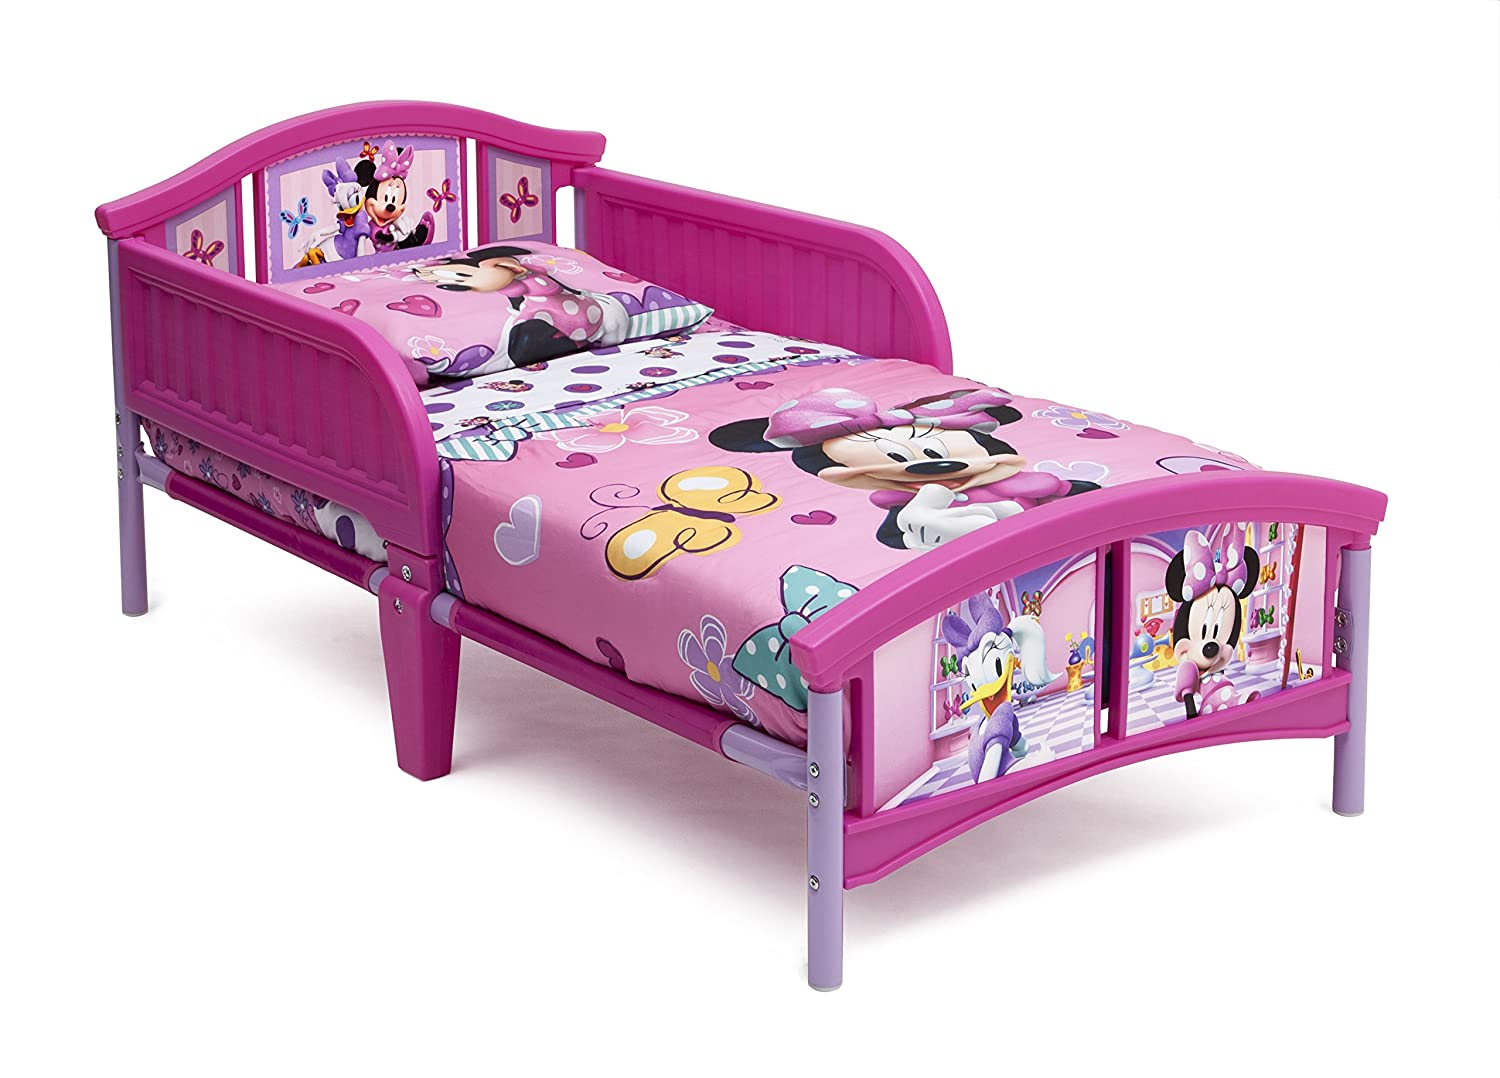 Amazon.com : Delta Children Plastic Toddler Bed, Disney Minnie Mouse : Baby